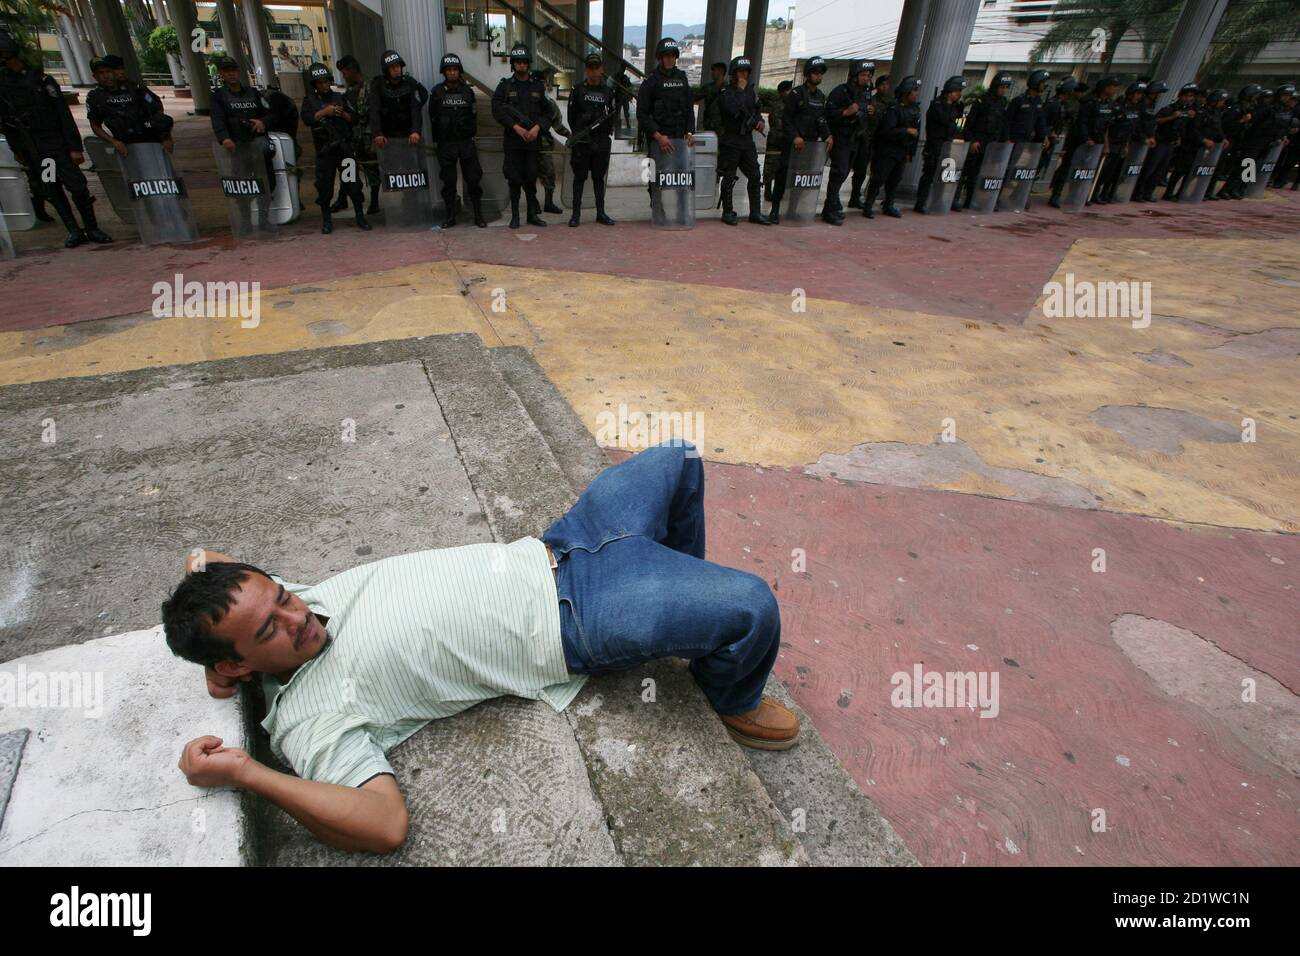 A supporter of Honduras' ousted President Manuel Zelaya takes a rest during a protest outside the National Congress in Tegucigalpa November 2, 2009.REUTERS/Oswaldo Rivas (HONDURAS CONFLICT POLITICS) Stock Photo